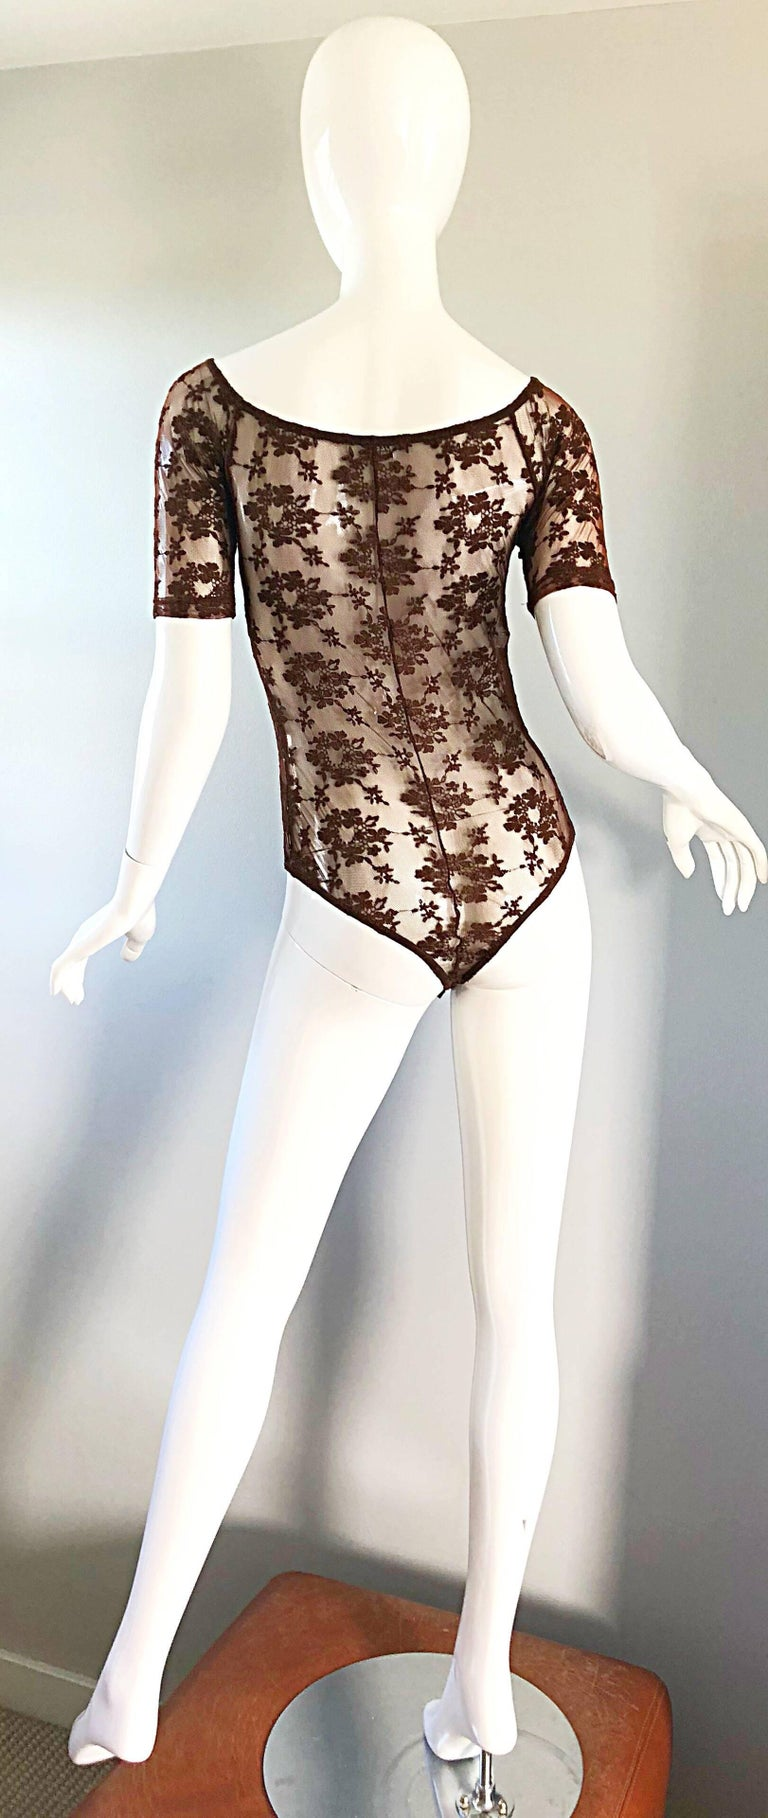 Women's Rare Rifat Ozbek 1990s Choclate Brown French Lace 90s Vintage Bodysuit Top  For Sale